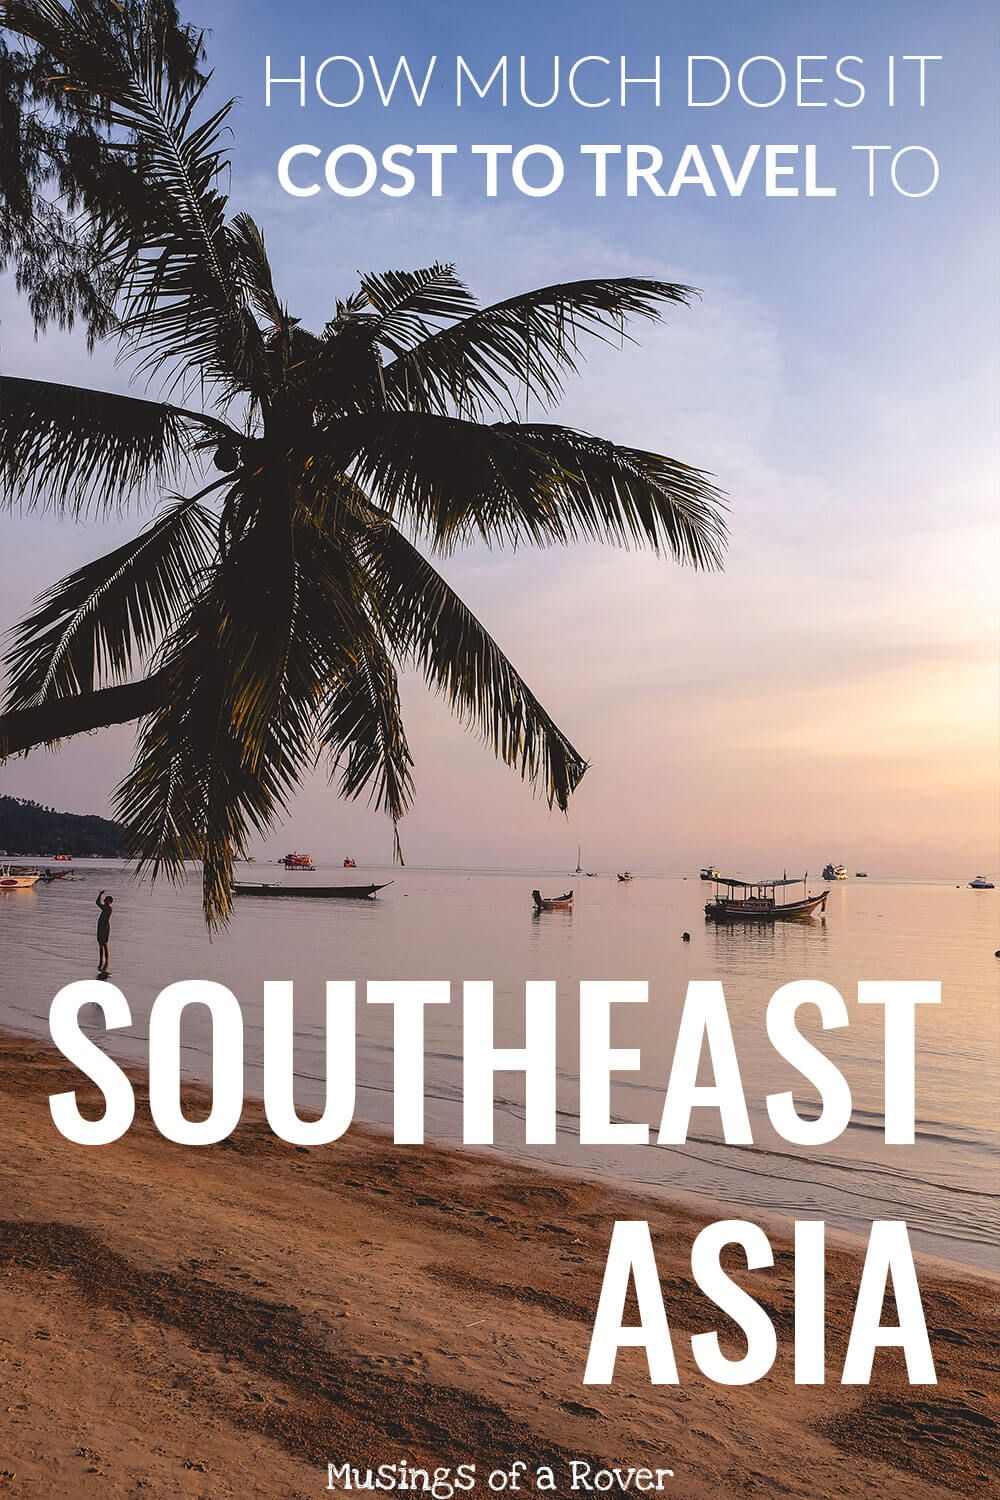 Want to know how much money you need for your trip to Southeast Asia? I recorded every expense from my travels to Thailand, Malaysia, Bali, and Hong Kong. Now you can use this post as a guide for discovering just how much a backpacking trip to Southeast Asia costs!